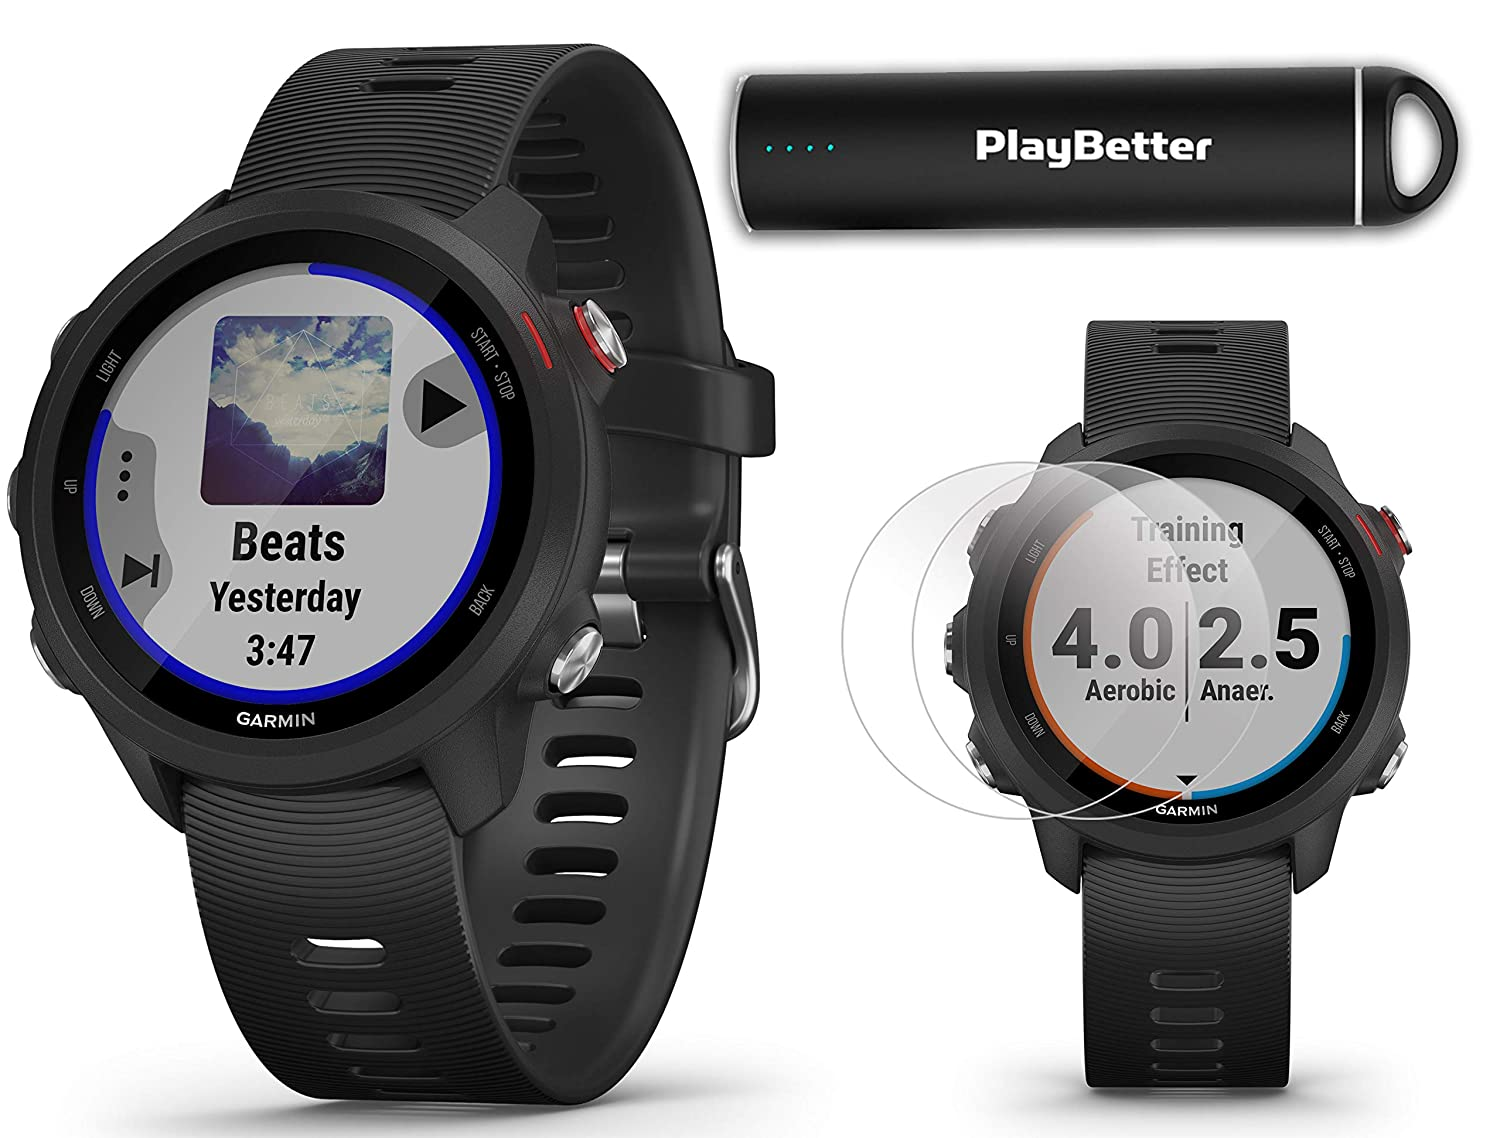 Garmin Forerunner 245 Music Black Running GPS Watch Power Bundle HD Screen Protectors PlayBetter Portable Charger Music Spotify, Advanced Analytics, Heart Rate, PulseOx 2019 010-02120-20